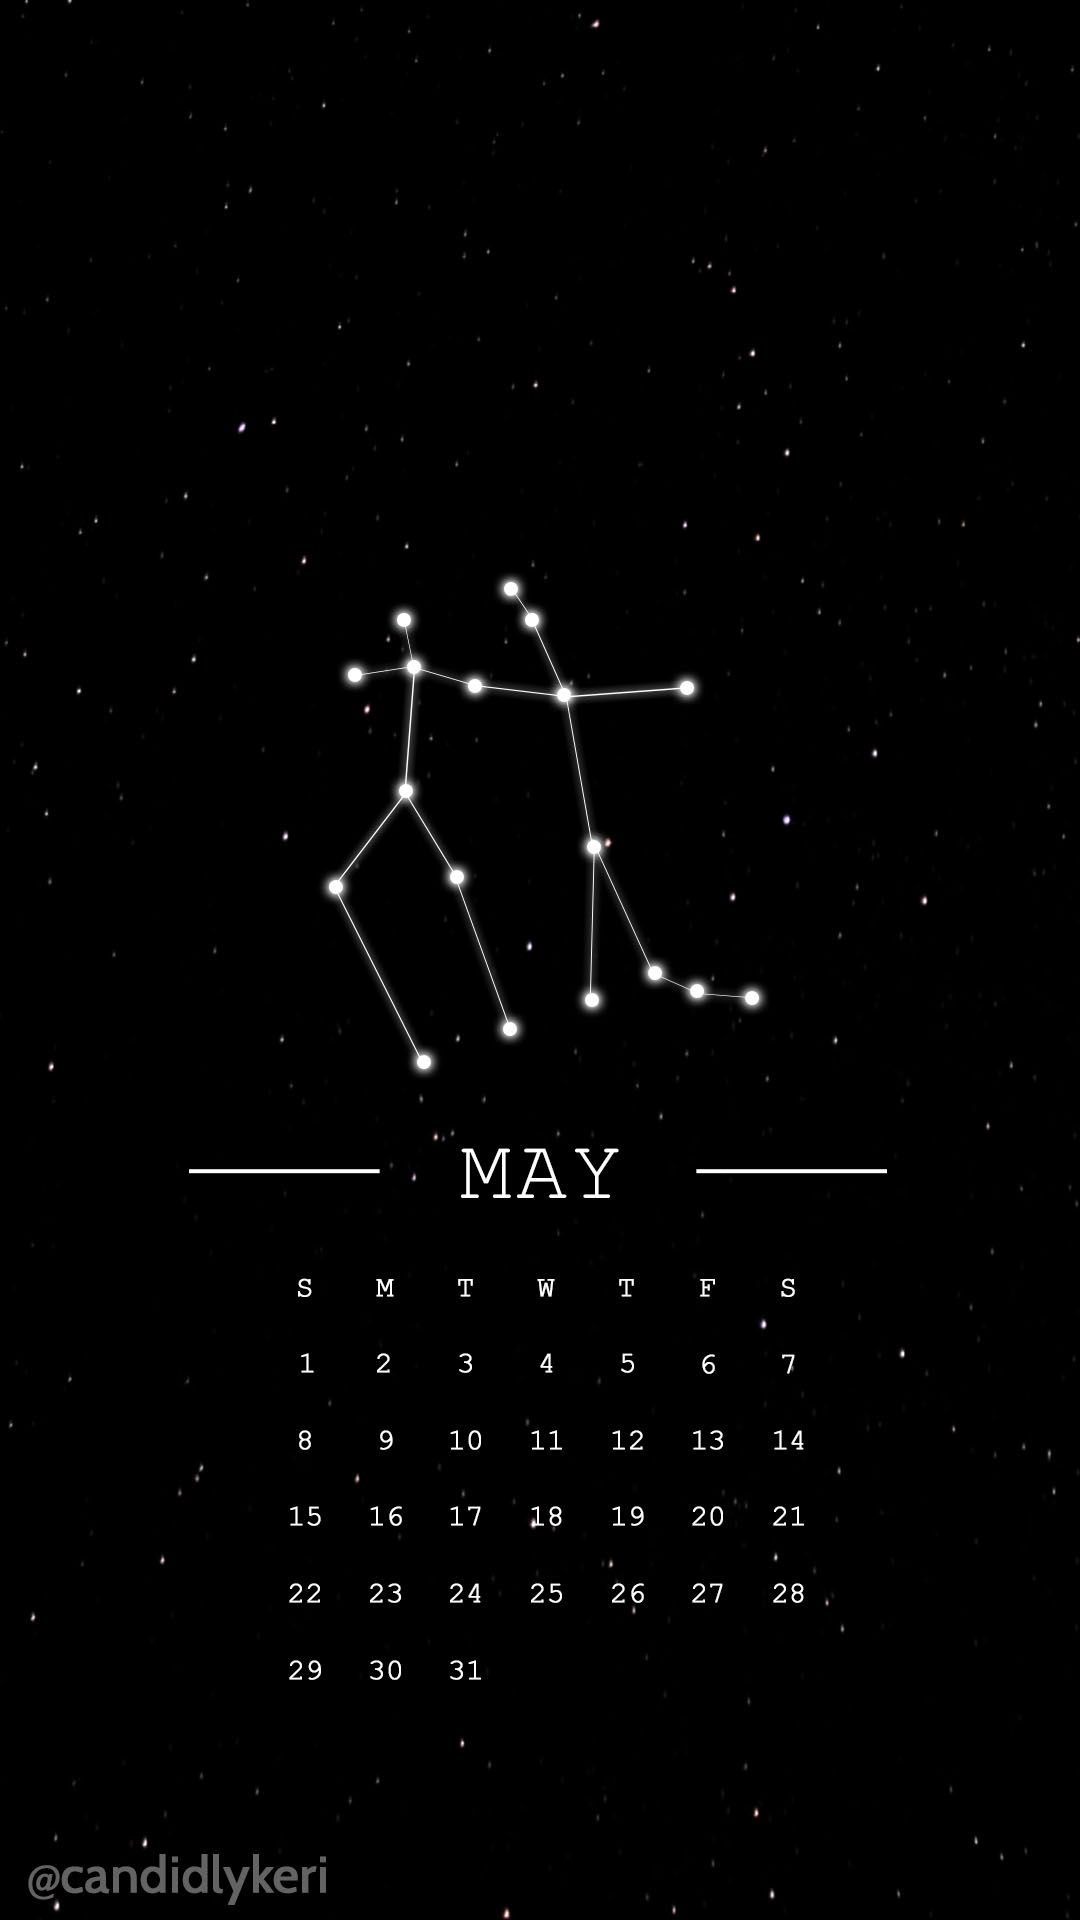 Wallpaper iphone free - Gemini Horoscope Constellation May 2016 Calendar Wallpaper Free Download For Iphone Android Or Desktop Background On